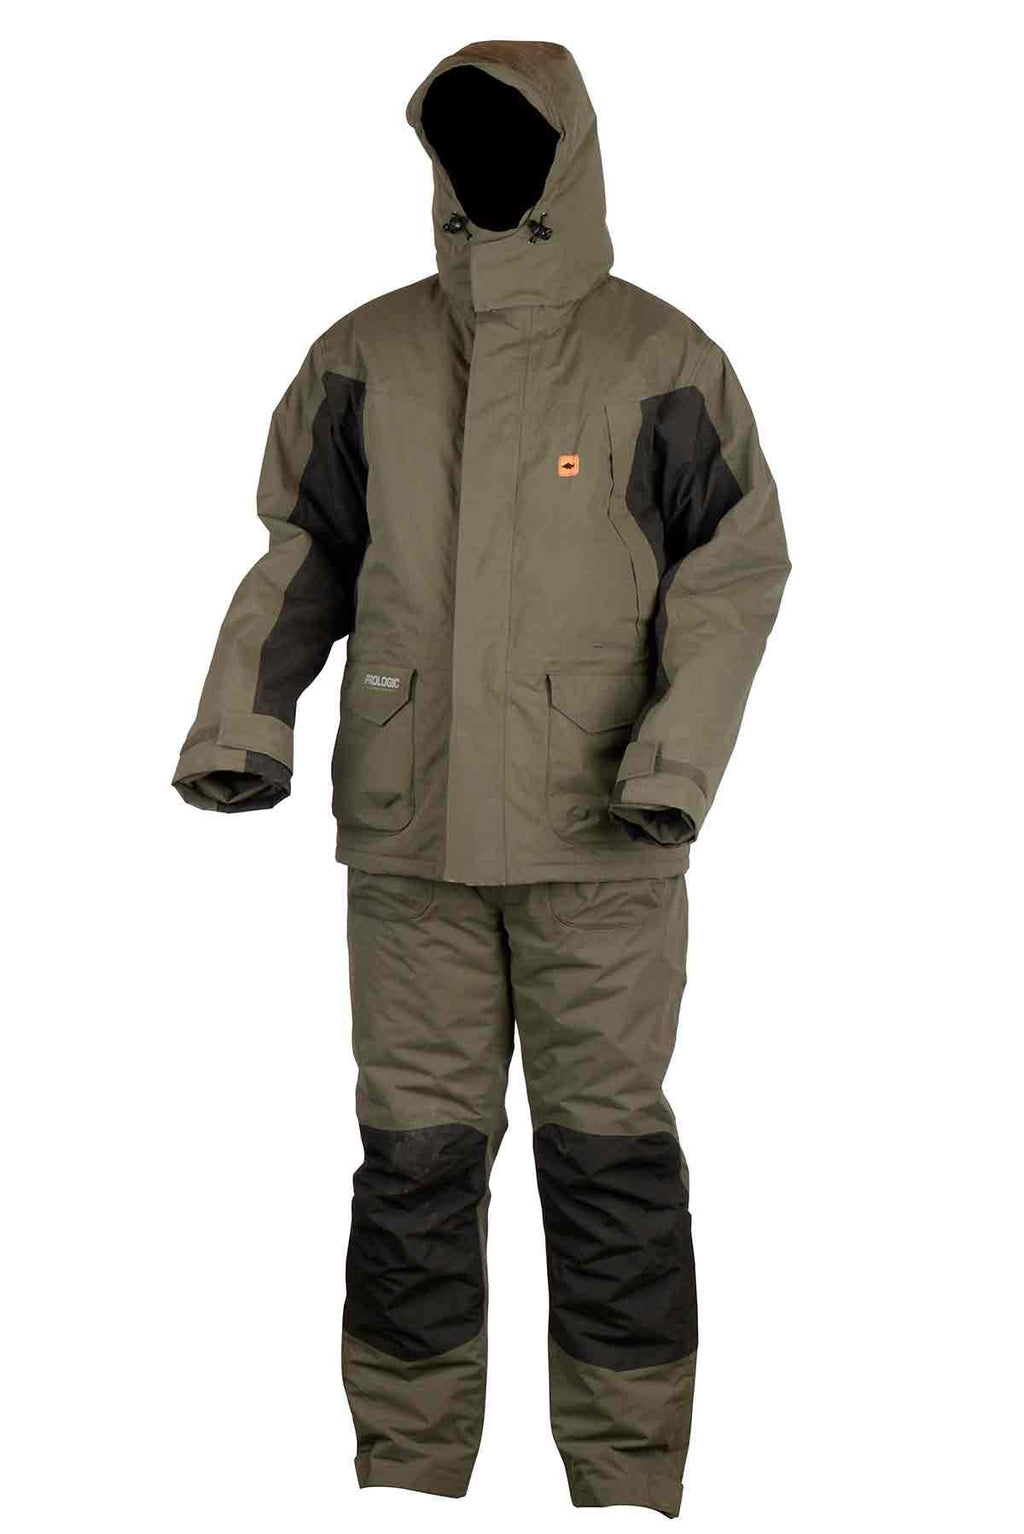 Pro Logic Pro Logic High Grade Thermo Suit  - Parkfield Angling Centre